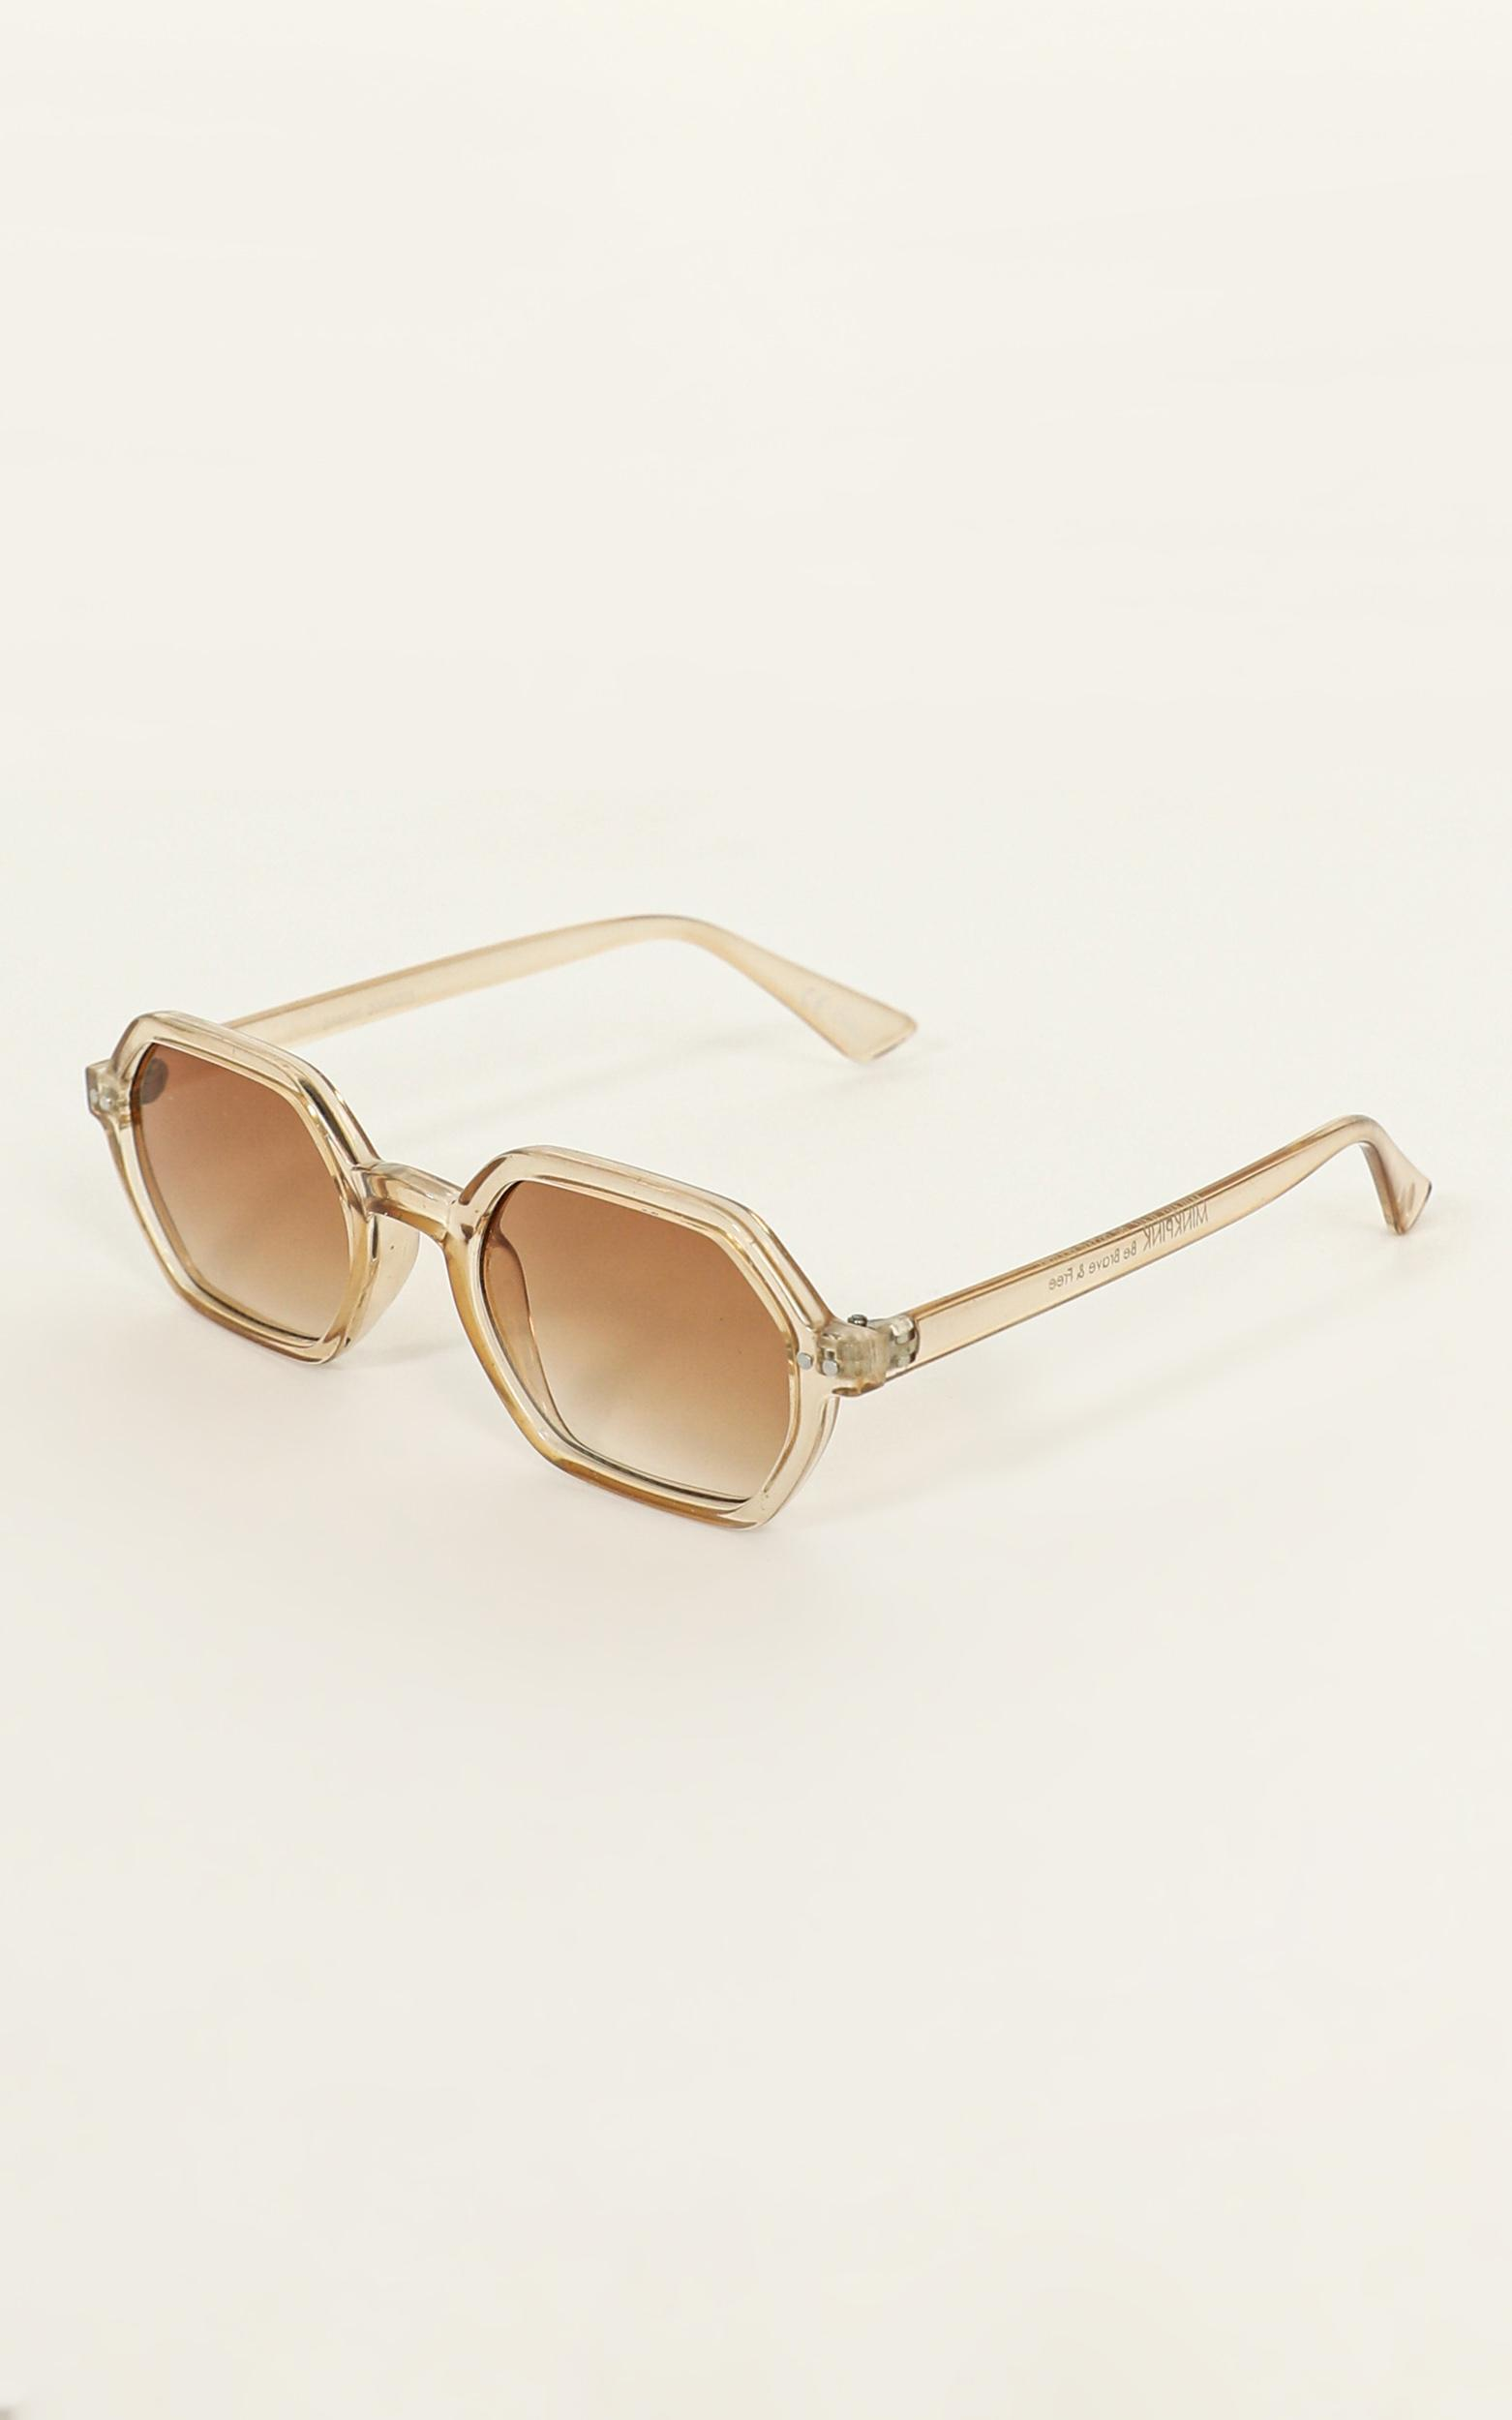 Mink Pink - Zimmy Sunglasses In Tan And Tan Grad, Tan, hi-res image number null